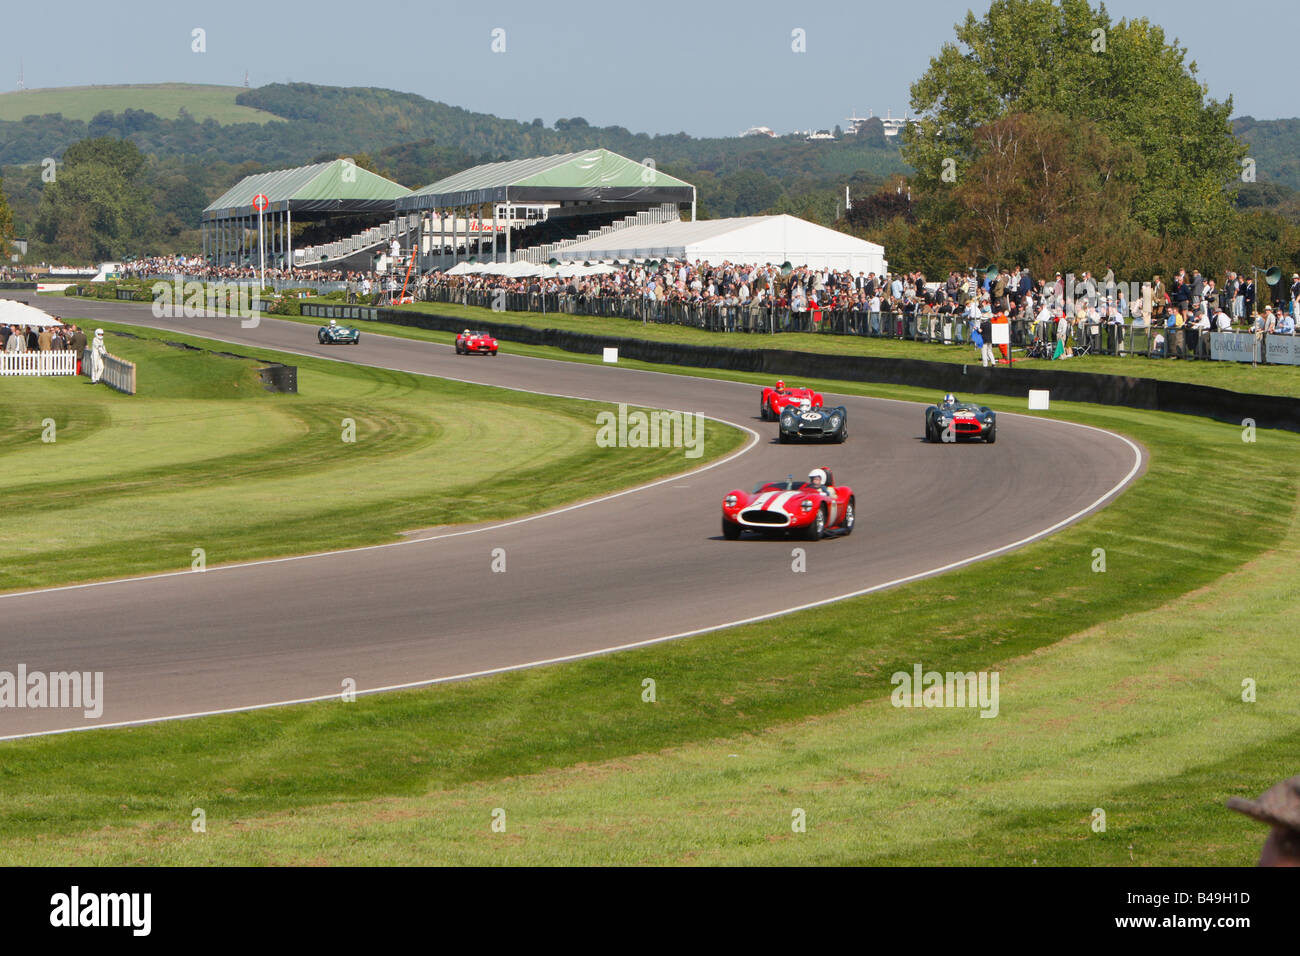 Jaguars at Madgwick corner Goodwood - Stock Image